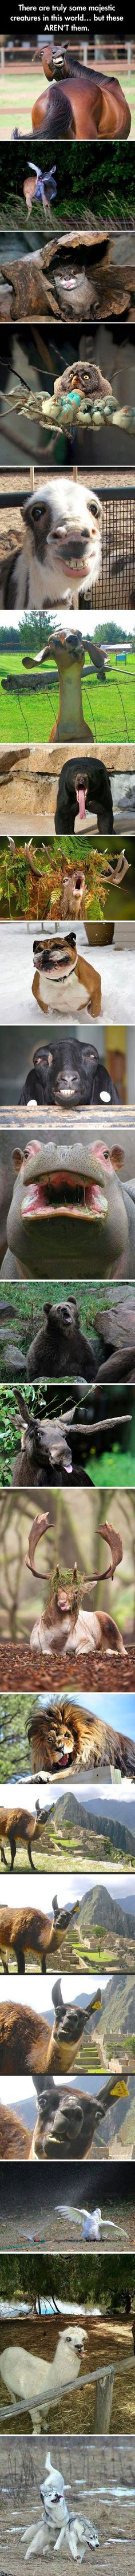 Majestic Animals - Funny Animal Quotes - - This made me laugh so hard! I hope it can cheer anyone up who is having a bad day The post Majestic Animals appeared first on Gag Dad. Funny Animal Memes, Cute Funny Animals, Funny Animal Pictures, Funny Cute, Funny Memes, Funny Pics, Funny Stuff, Stupid Animals, Animal Funnies